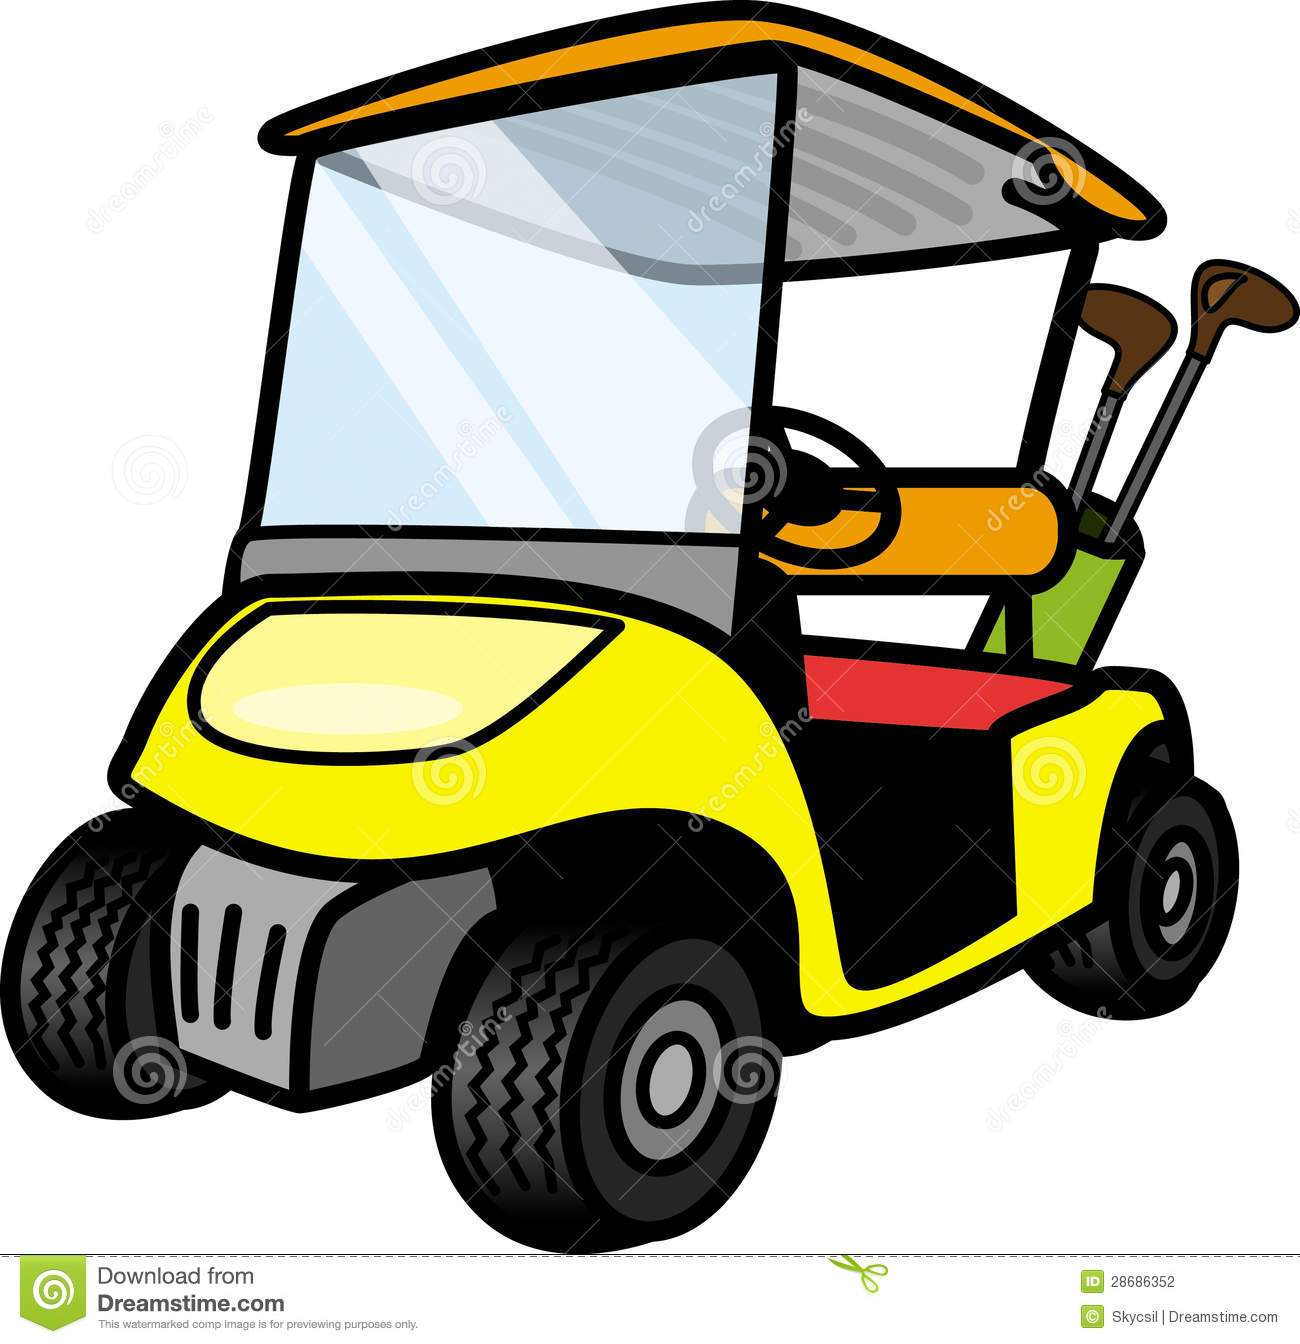 Free golf cart clipart images banner library stock Free golf cart clipart 6 » Clipart Portal banner library stock